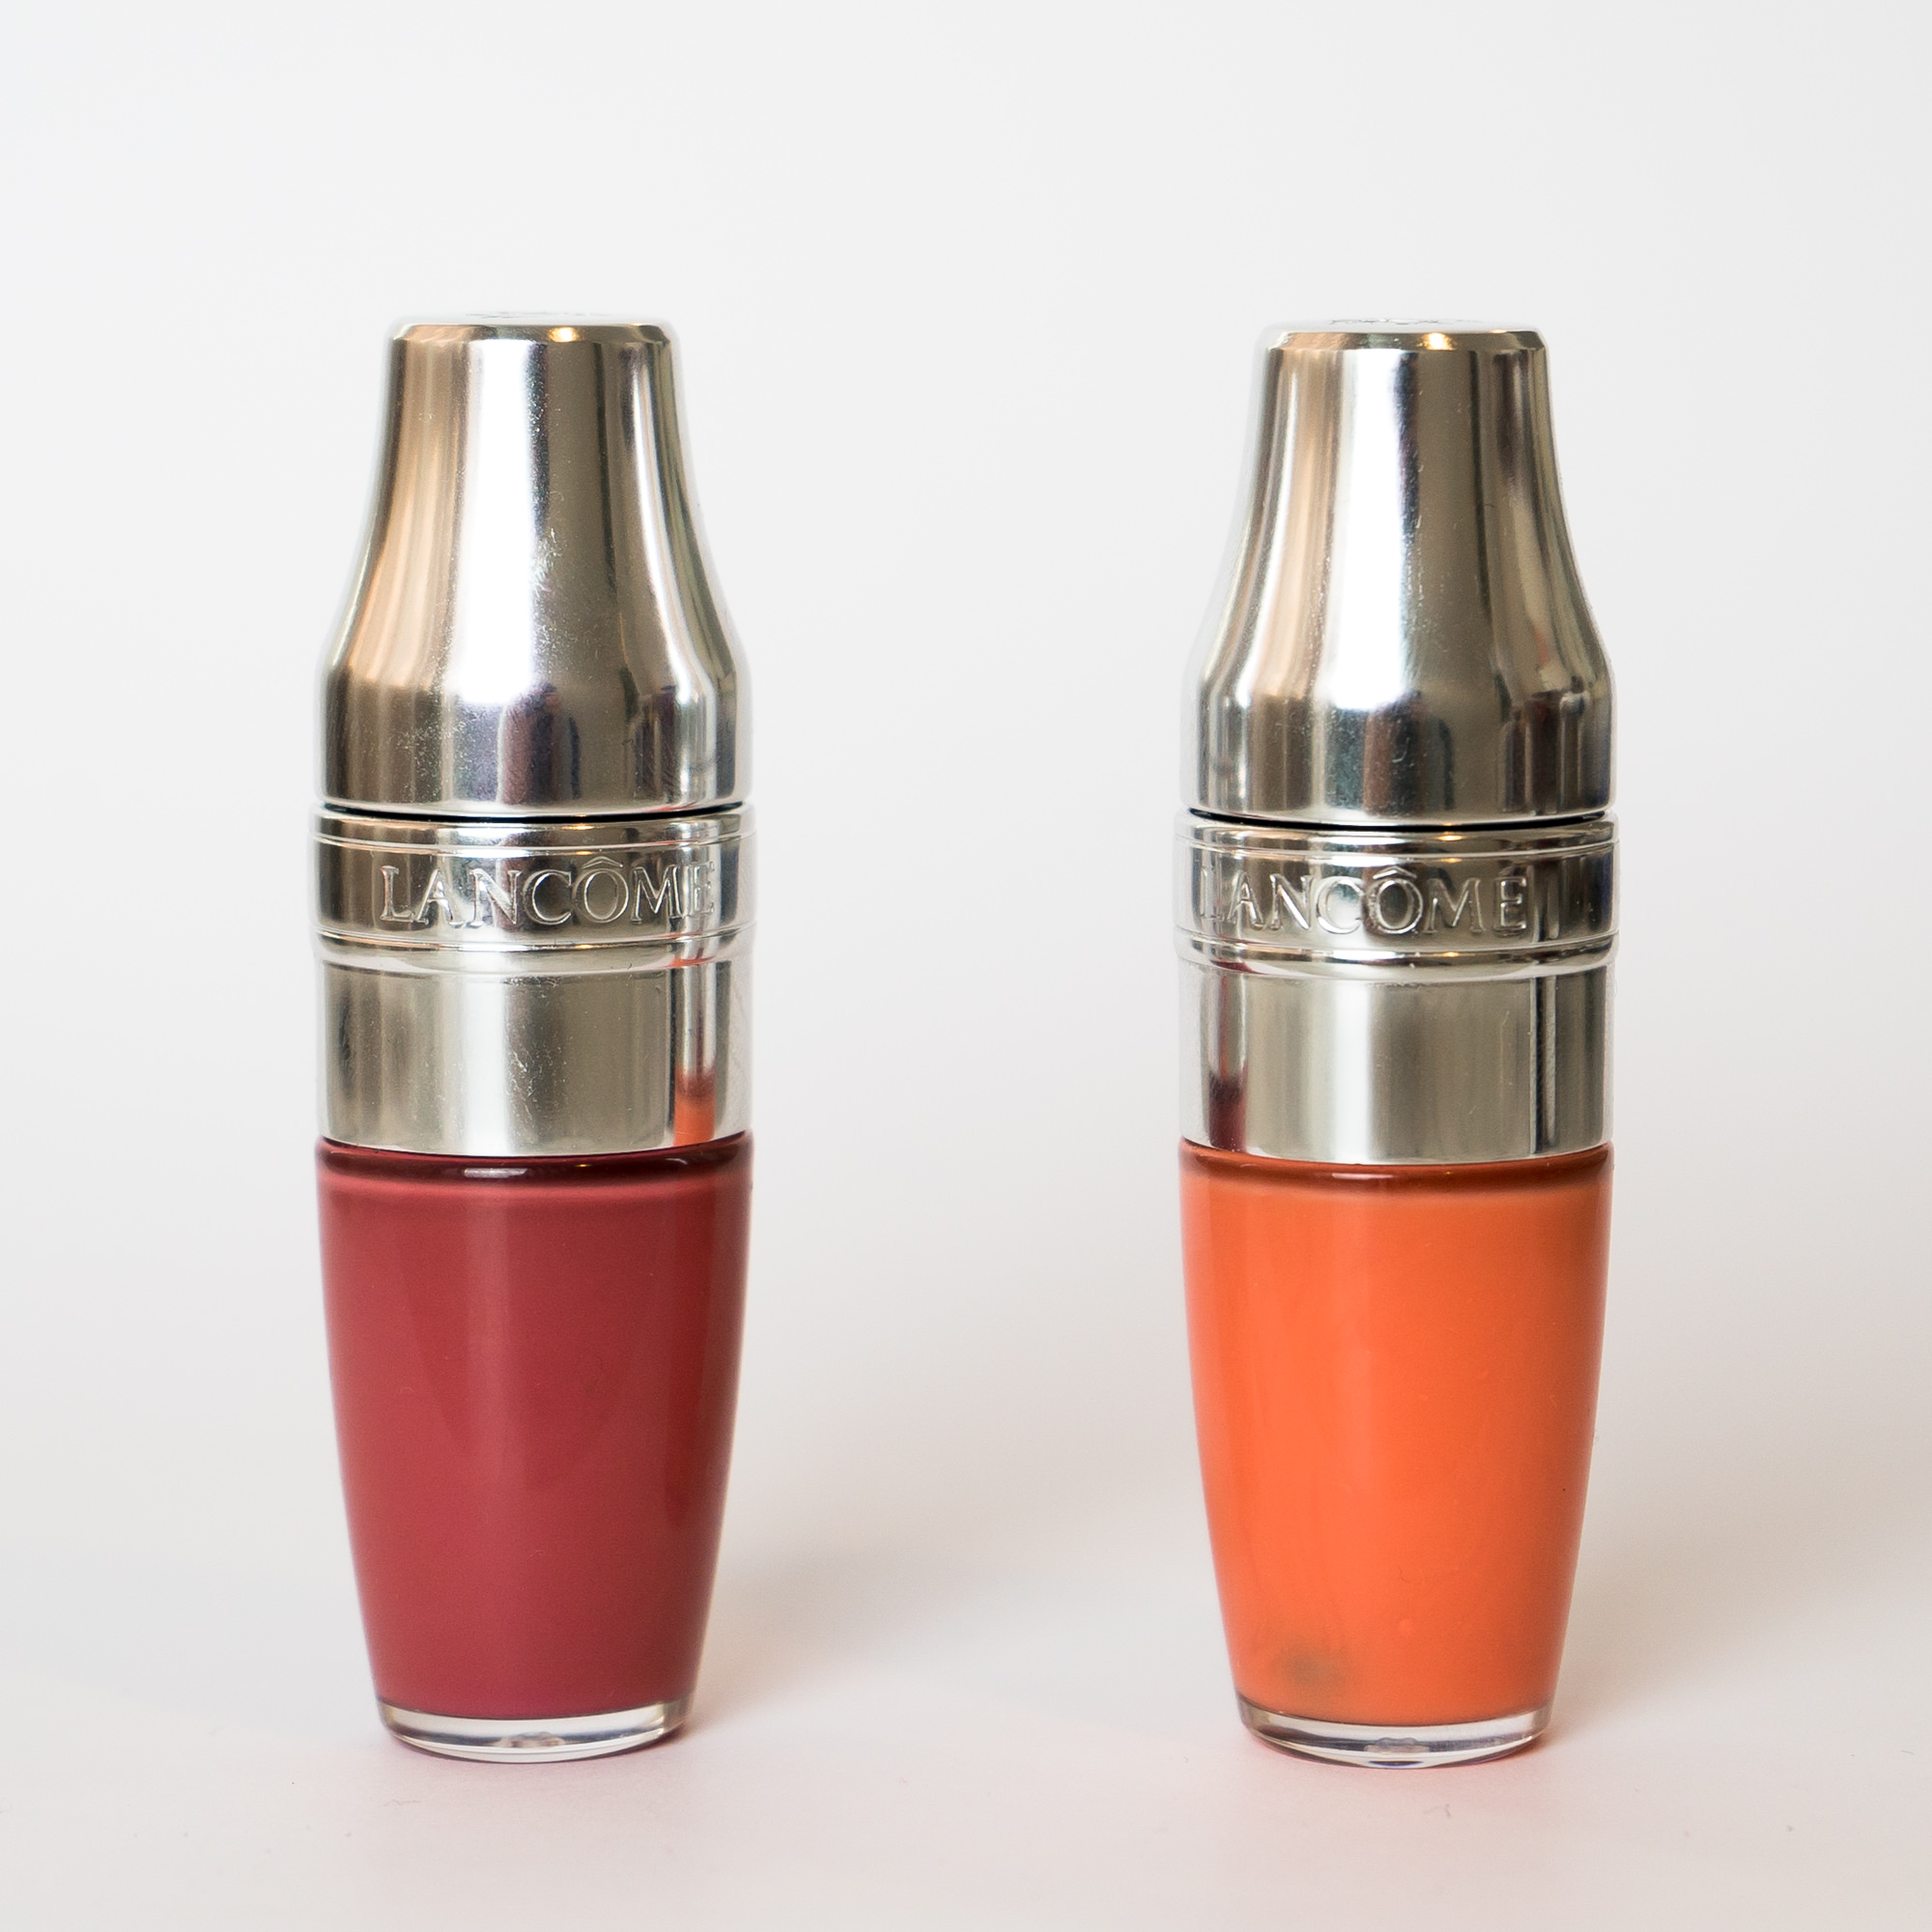 Lancôme Juicy Shaker Review